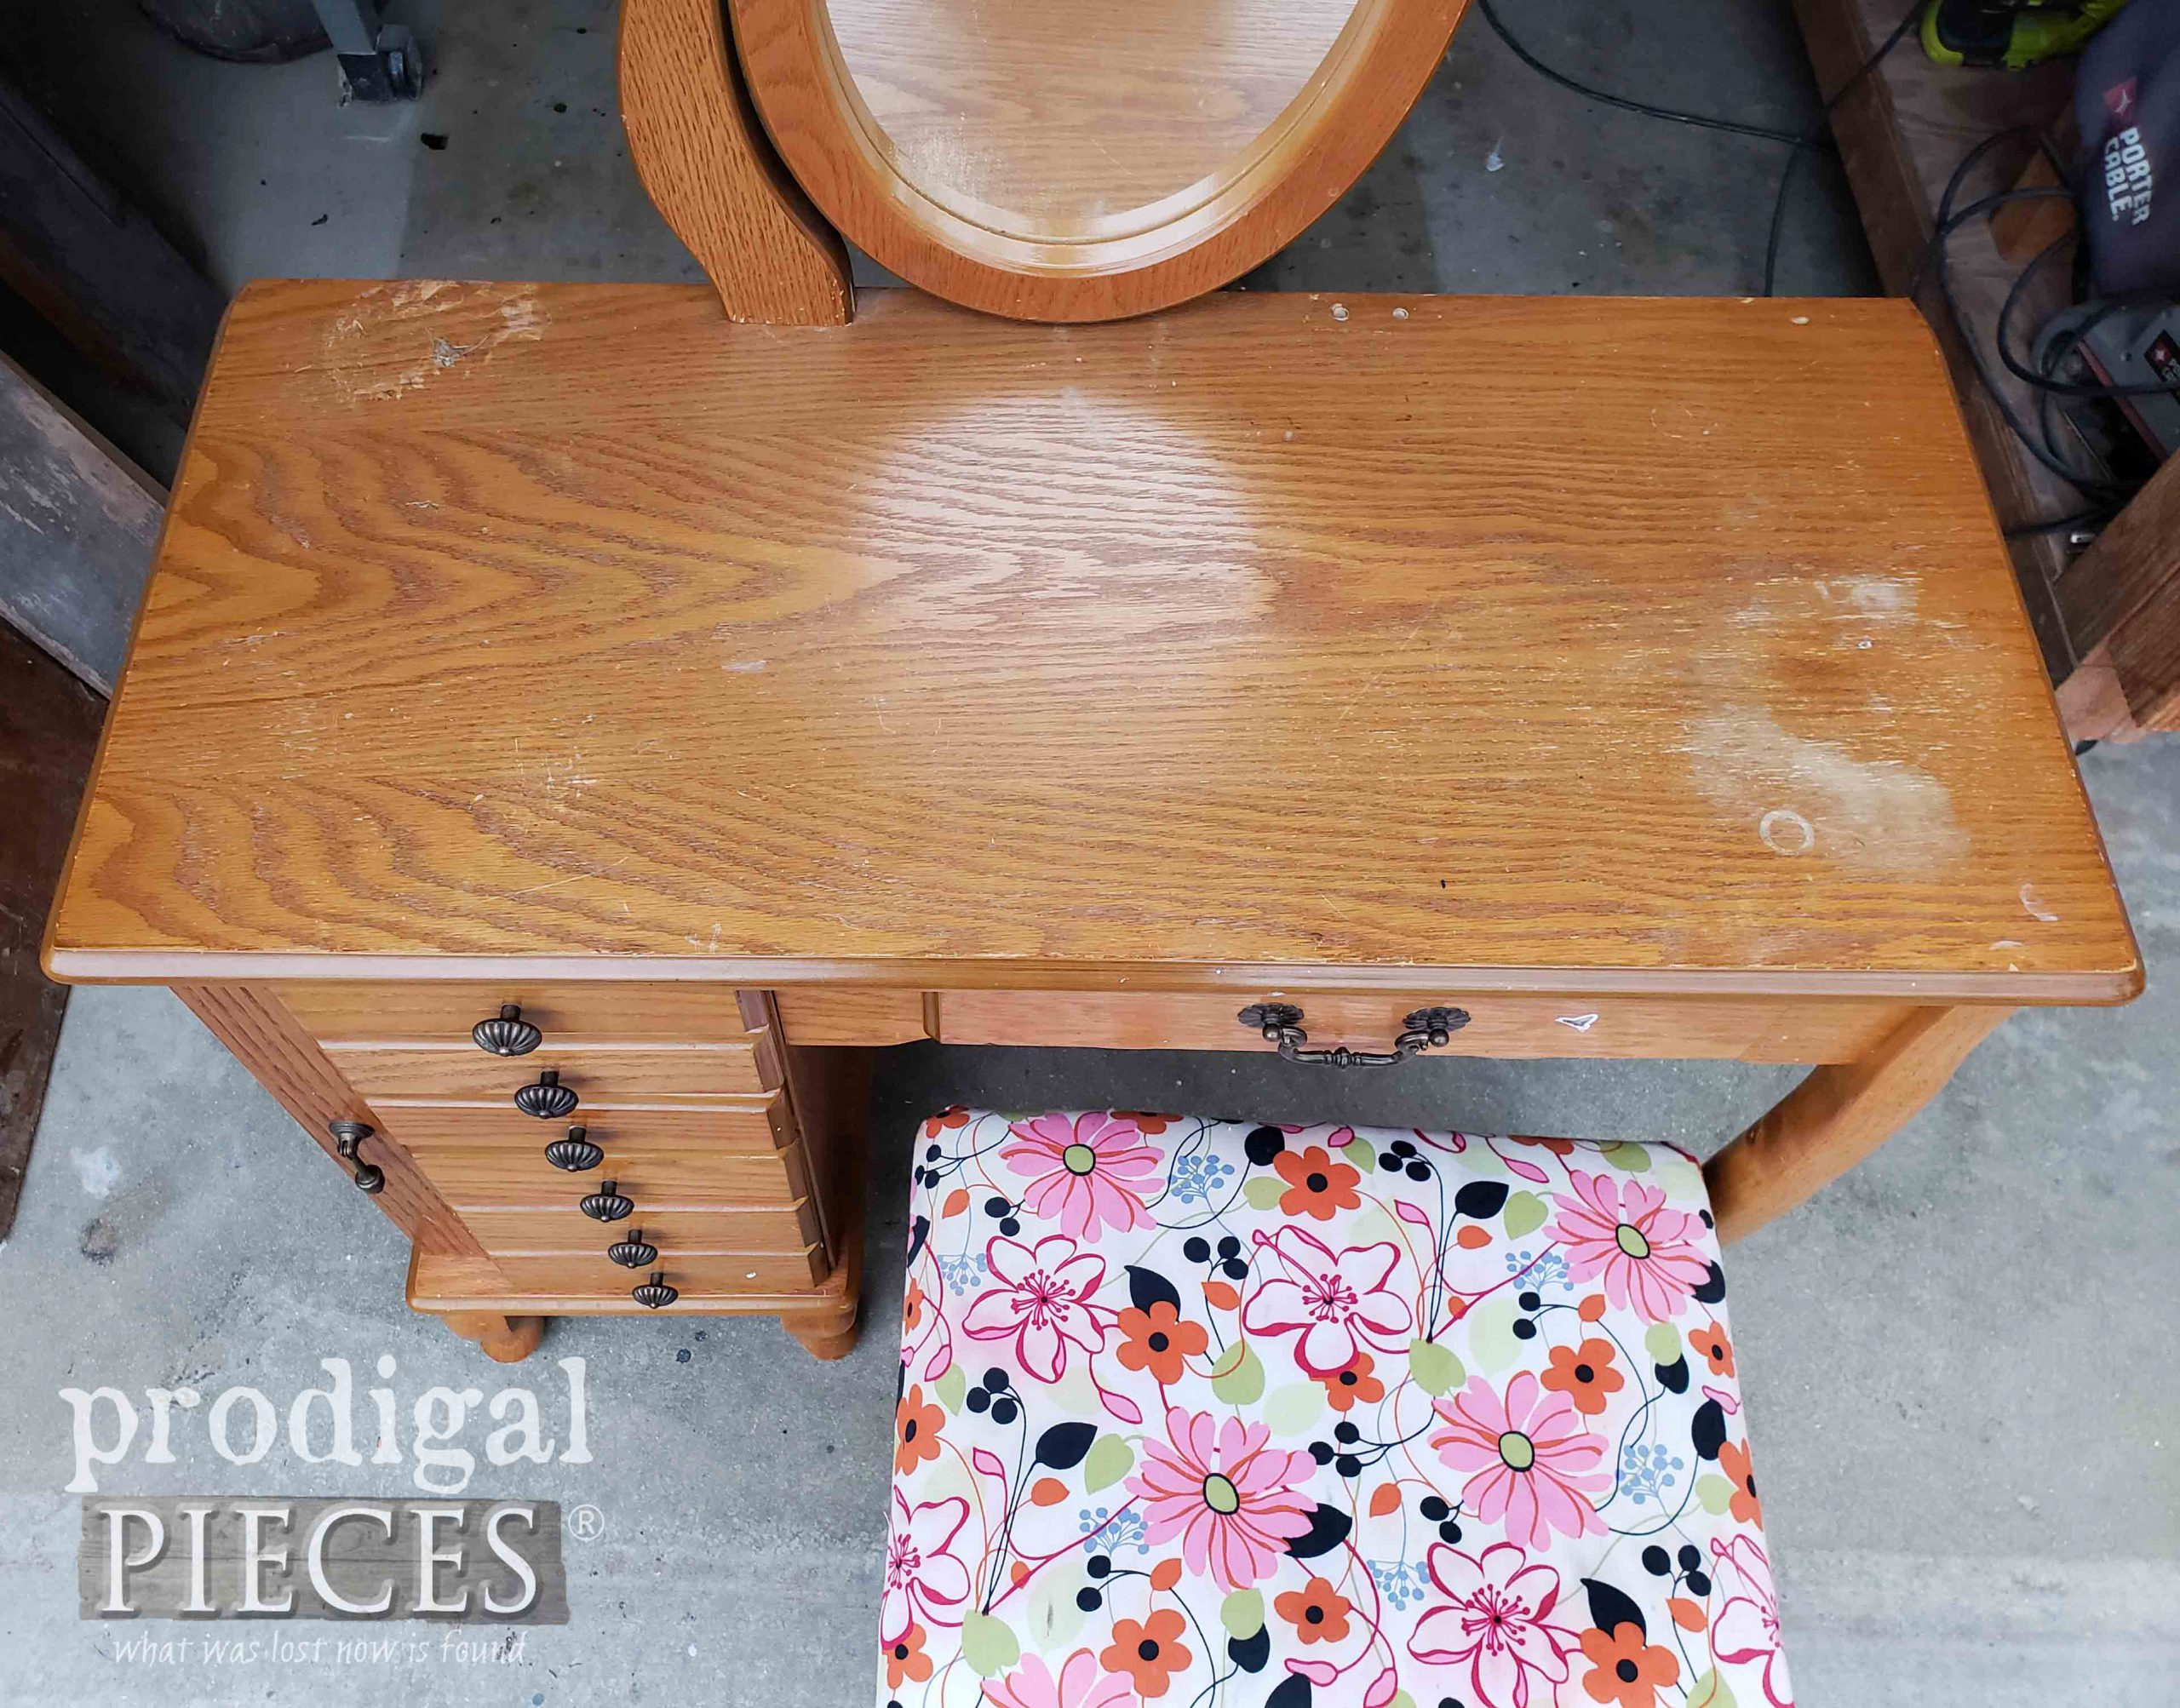 Girls Vanity Table Top with Damage | prodigalpieces.com